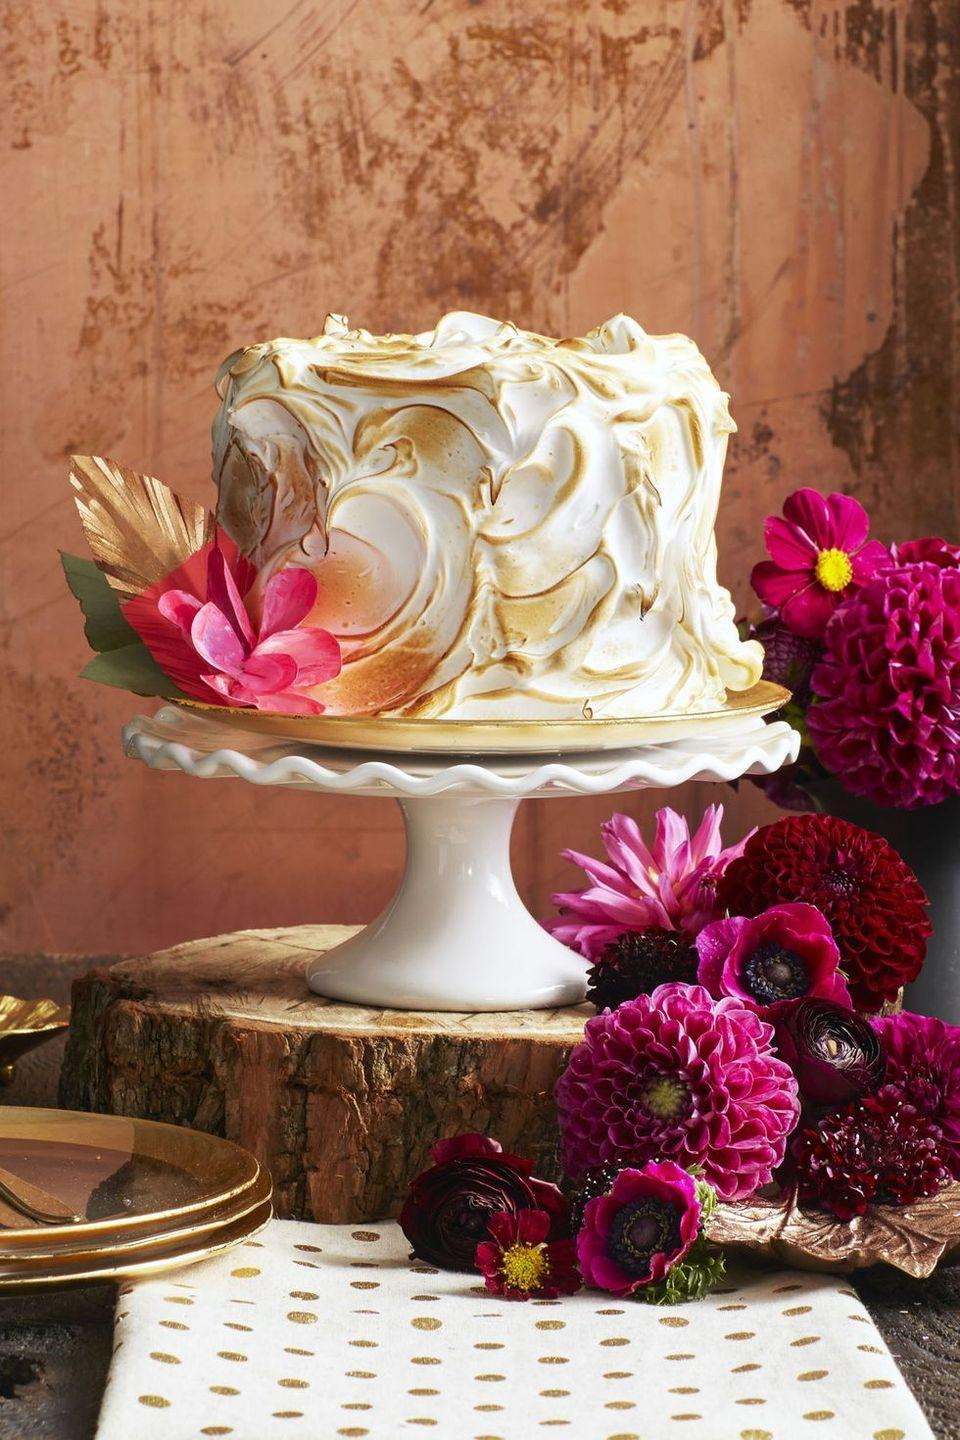 "<p>Feelin' extra about fall? Celebrate the season with this cream cheese-filled, fluffy meringue-topped cake.</p><p><em><a href=""https://www.goodhousekeeping.com/food-recipes/dessert/a35181/pumpkin-spice-cake/"" rel=""nofollow noopener"" target=""_blank"" data-ylk=""slk:Get the recipe for Pumpkin Spice Cake »"" class=""link rapid-noclick-resp"">Get the recipe for Pumpkin Spice Cake »</a></em></p>"